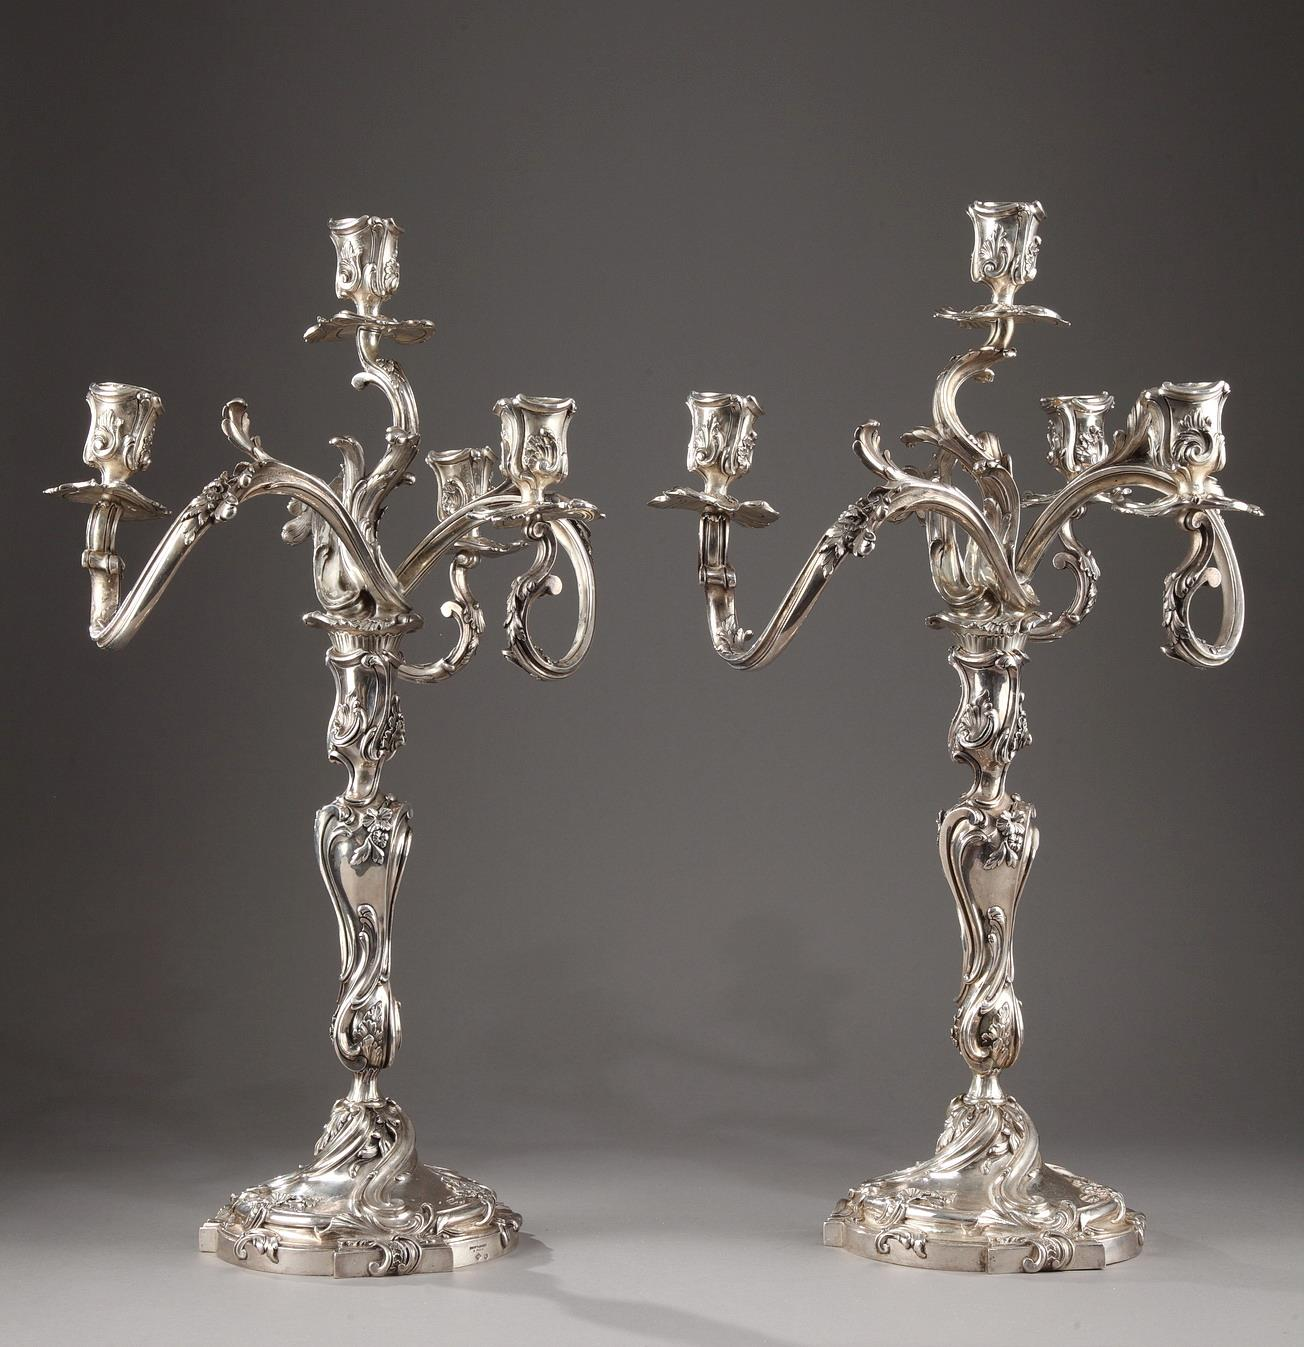 19th Century Silver candelabra Signed BOIN TABURET.